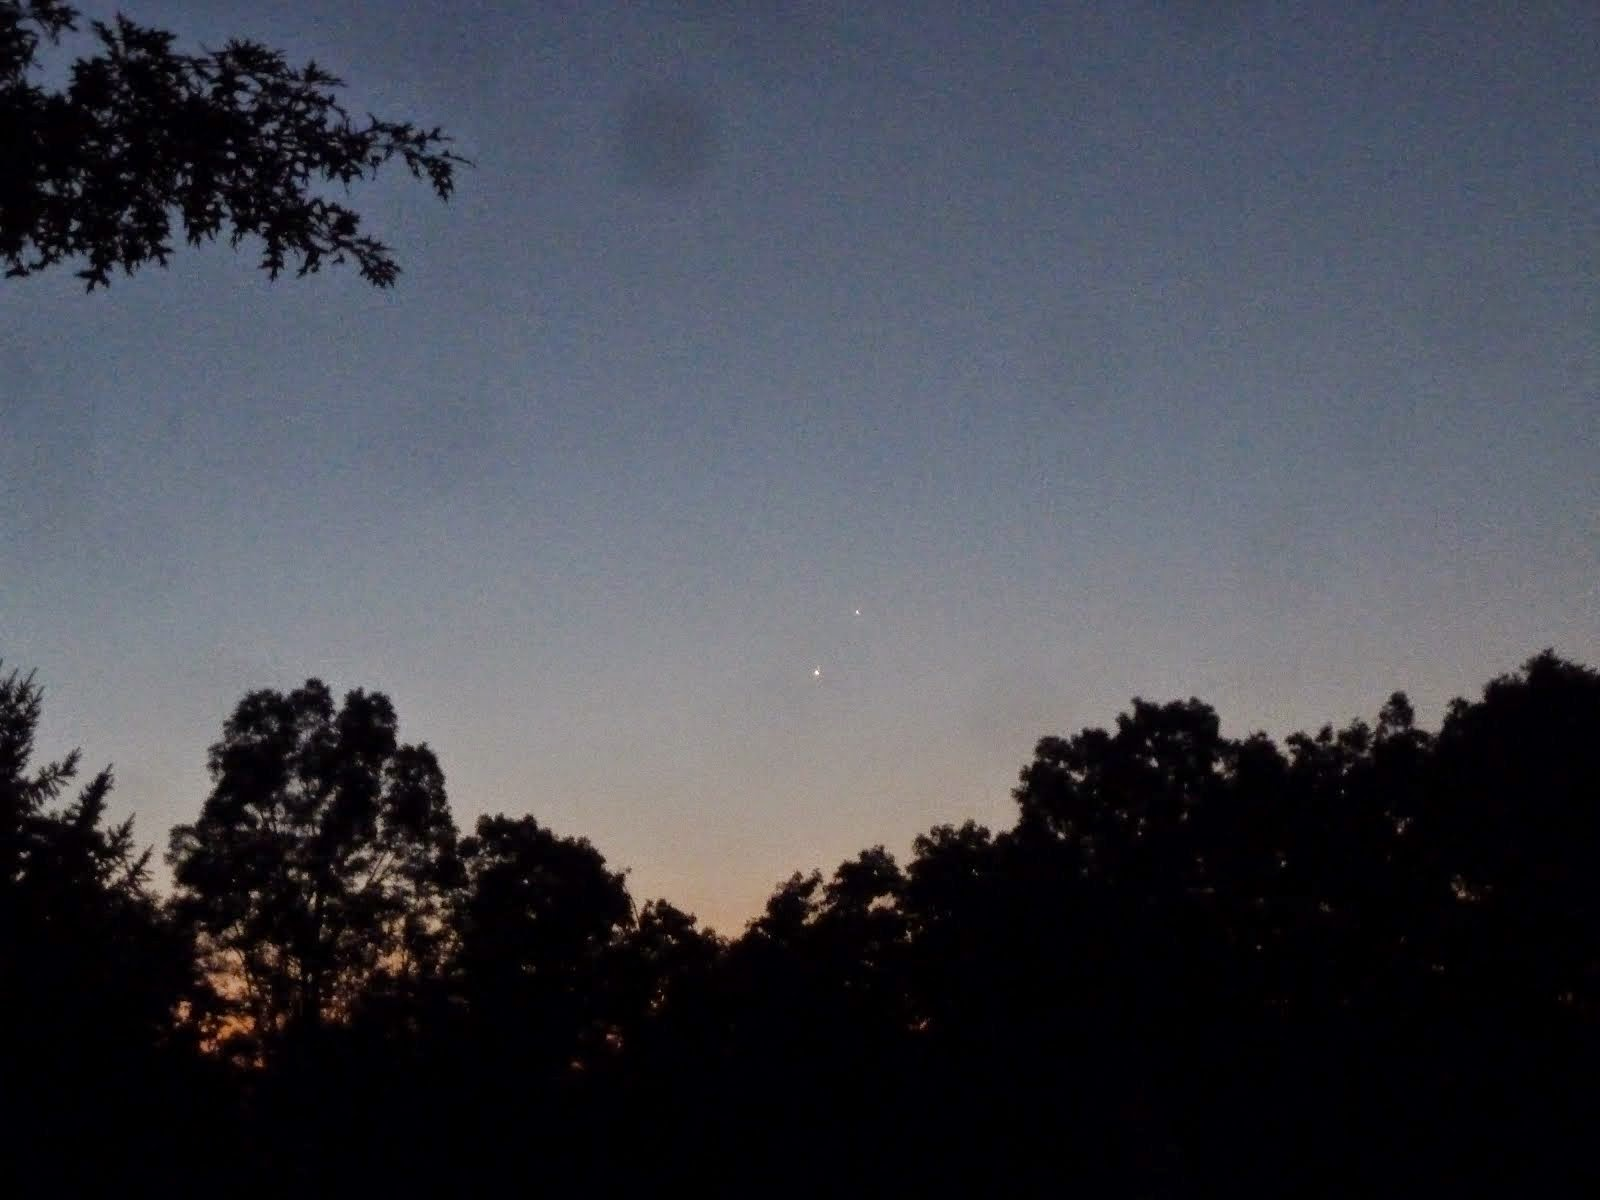 Venus and Jupiter - One Day Later